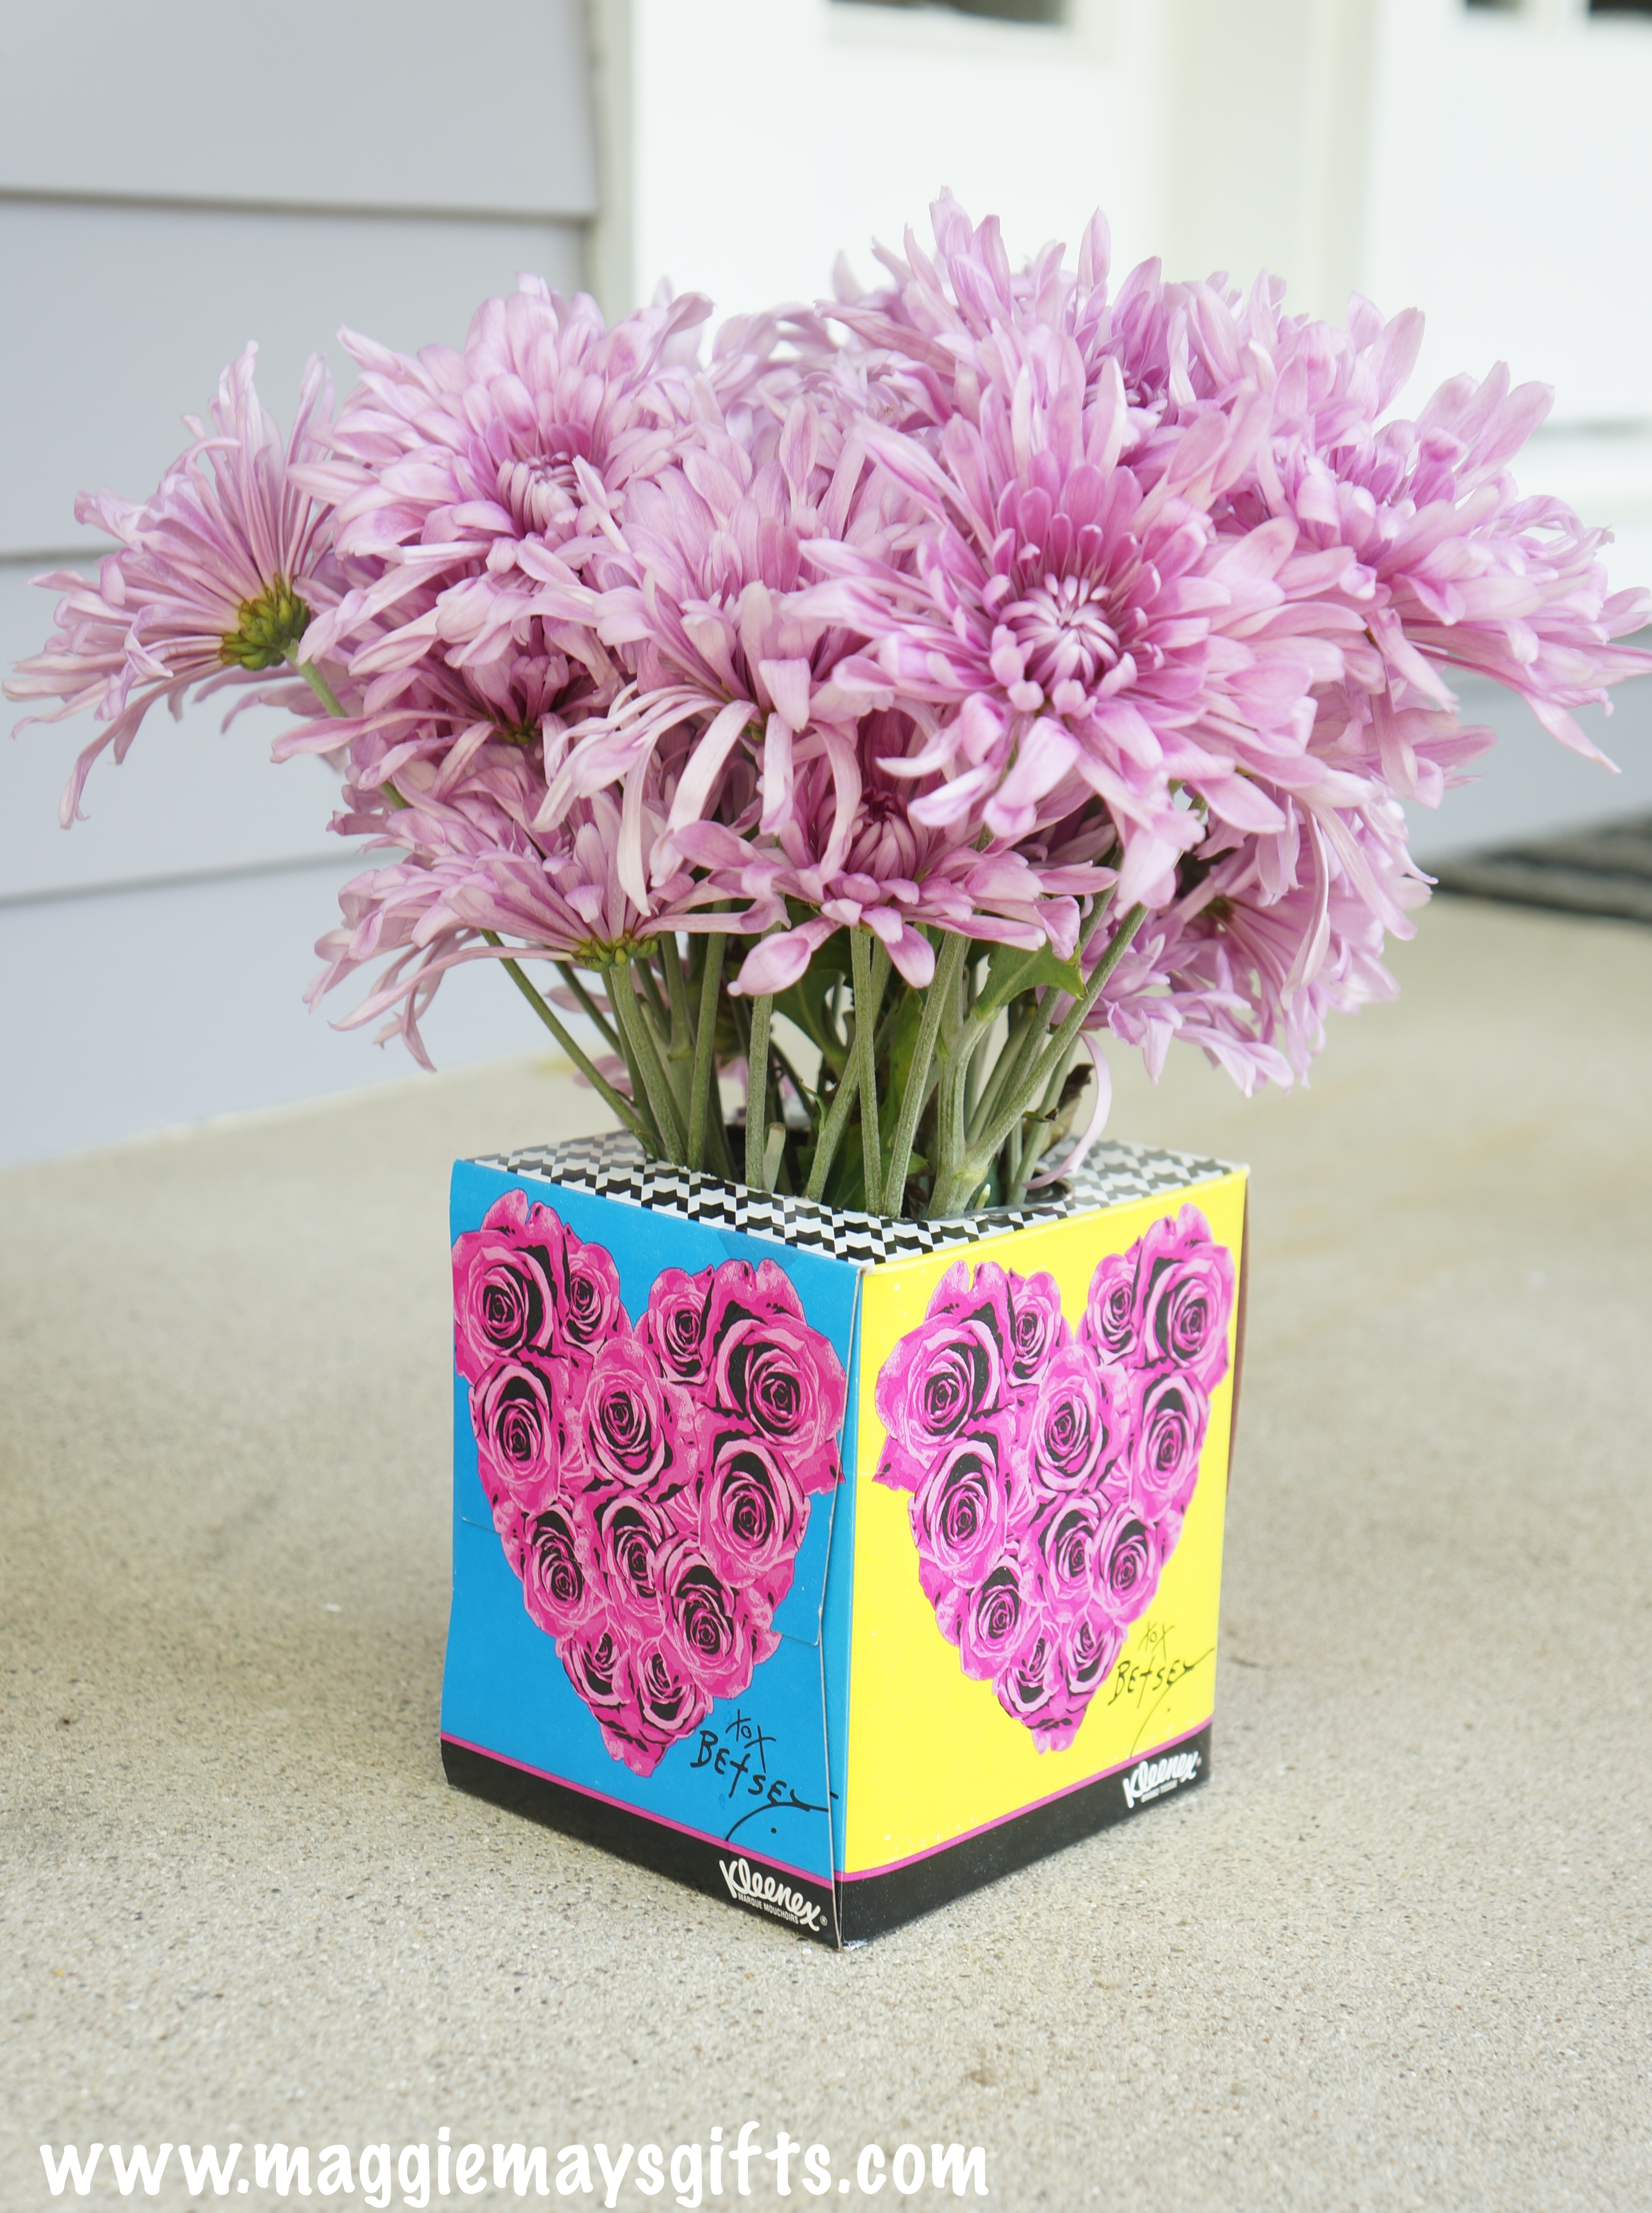 How To Turn A Tissue Box Into A Flower Vase Maggie May S